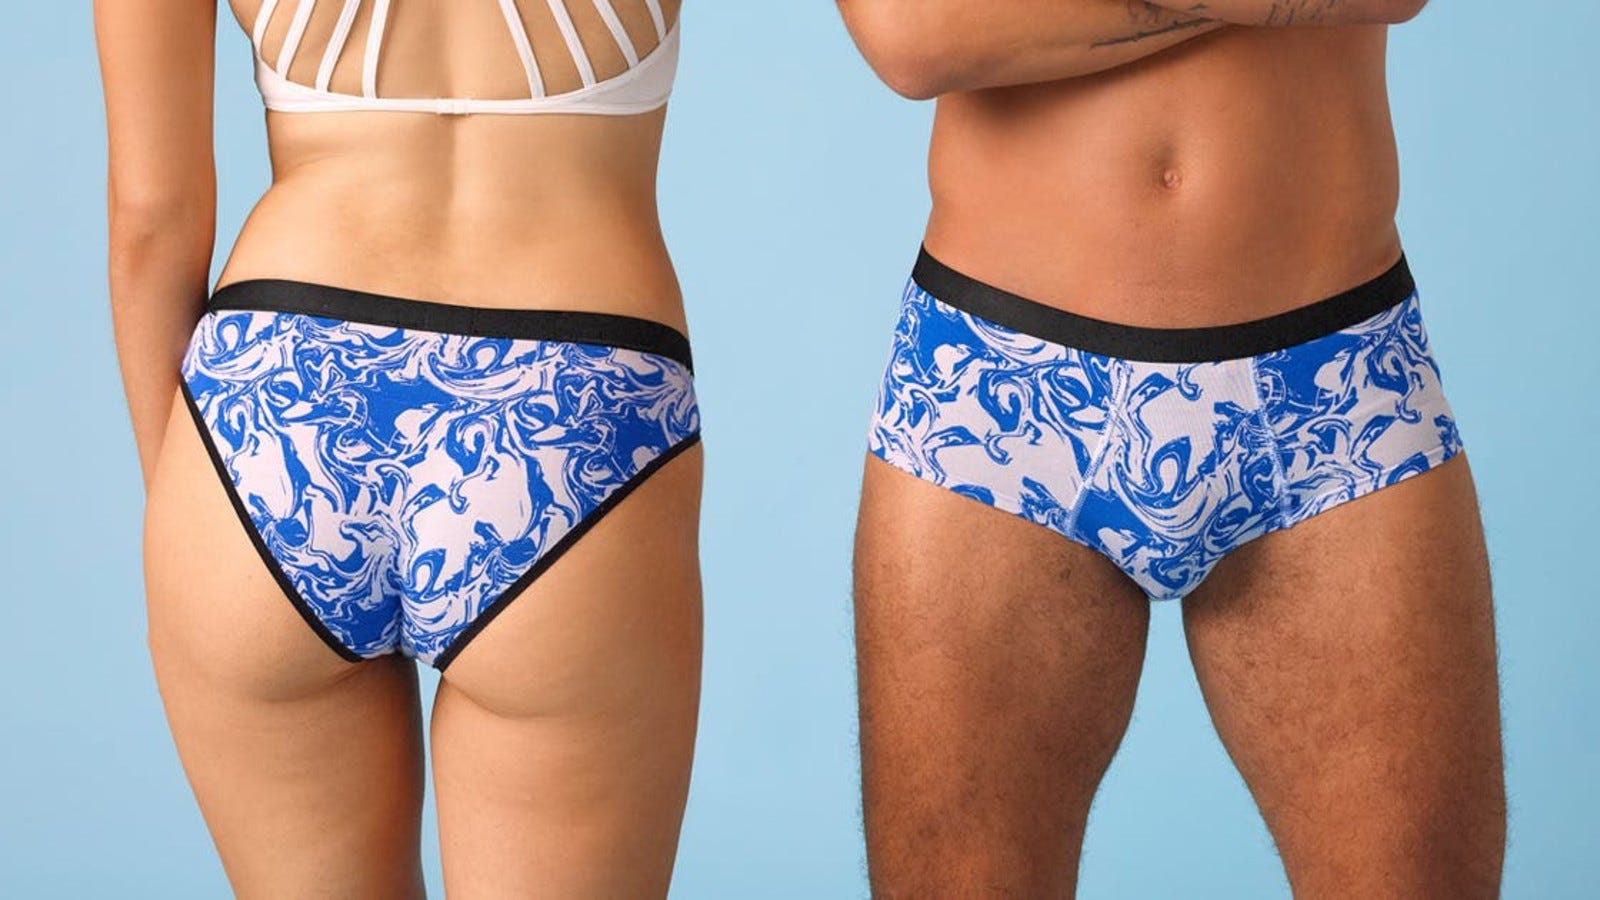 A woman and man wearing matching pairs of underwear from MeUndies.